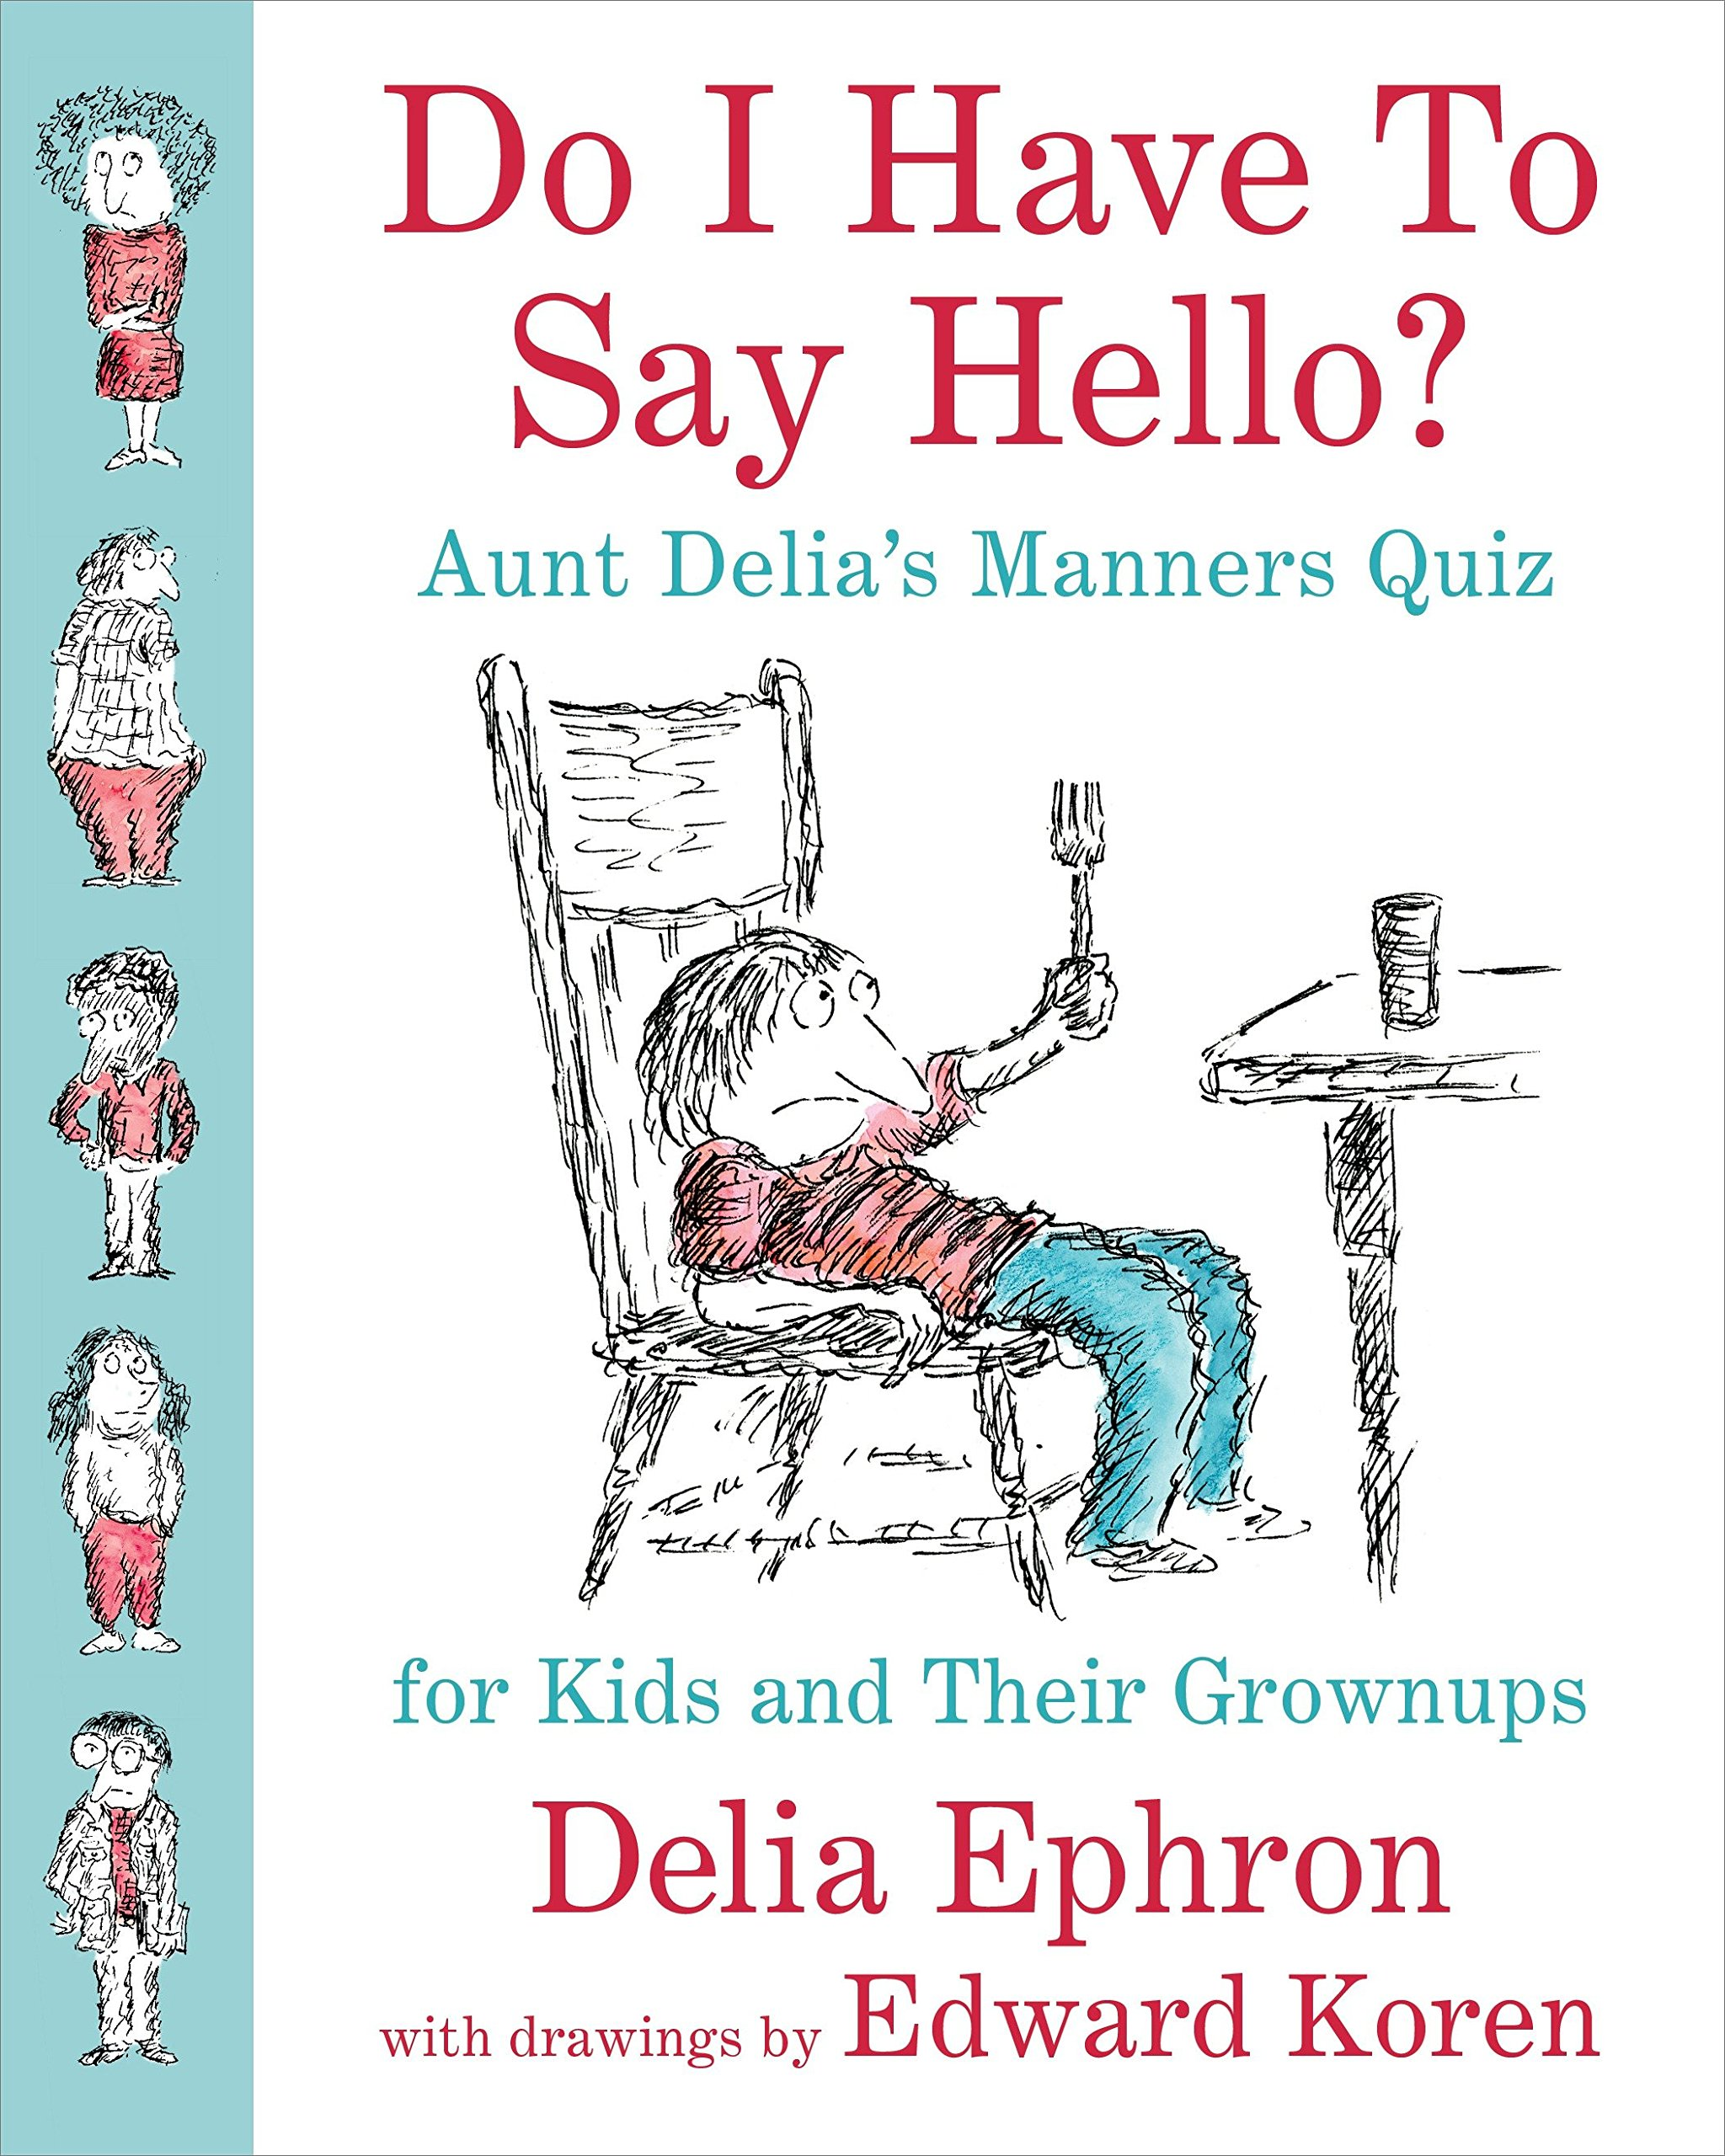 Do I Have to Say Hello? Aunt Delia's Manners Quiz for Kids and Their Grownups by Blue Rider Press